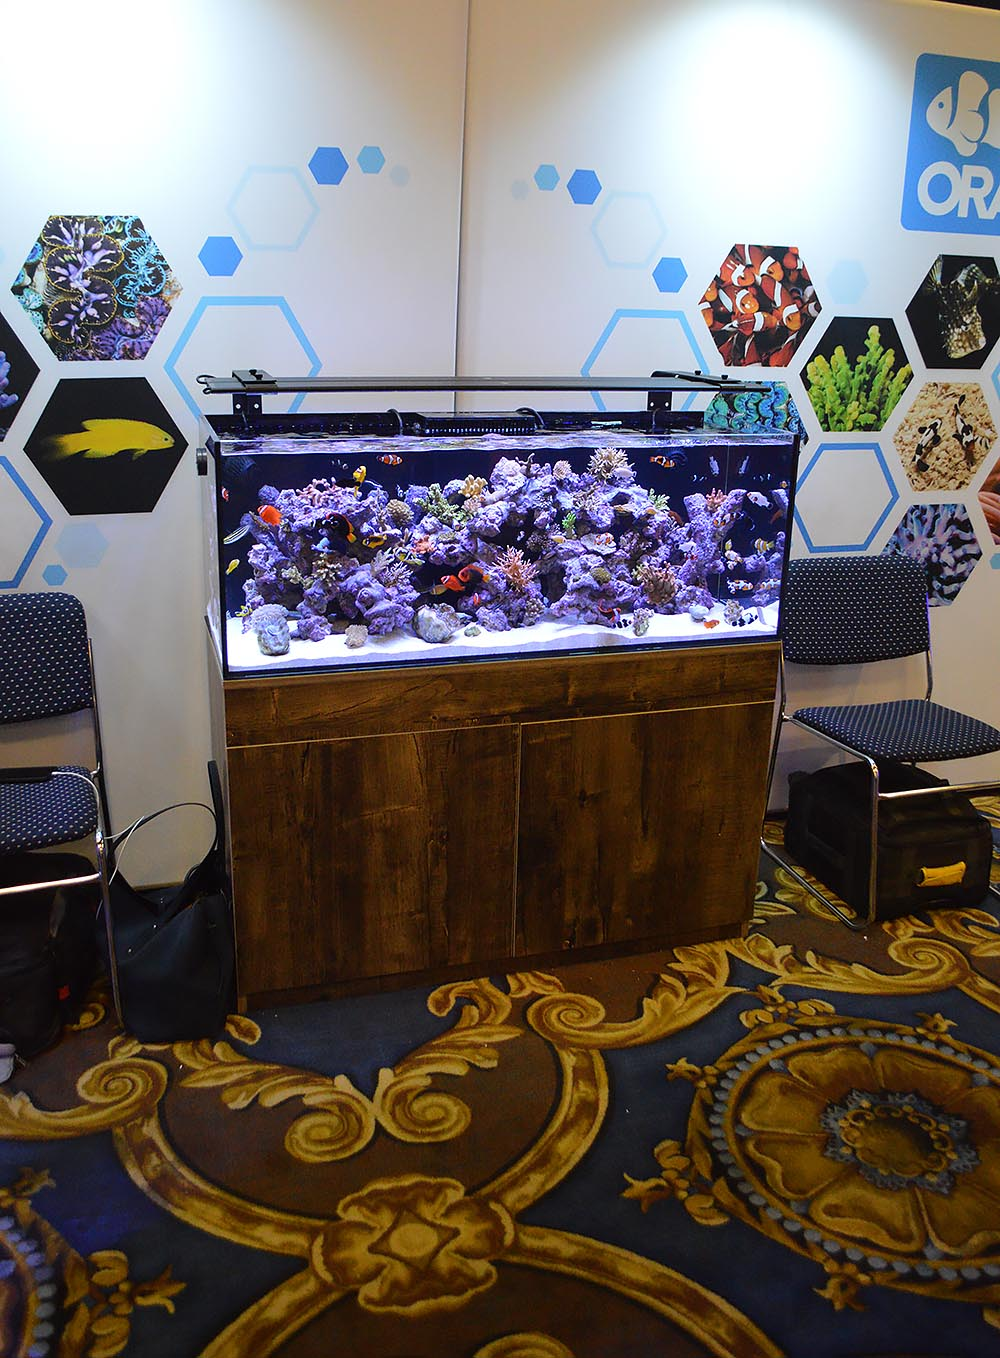 ORA's impressive display of cultured fish and coral would look fantastic in a home or office.